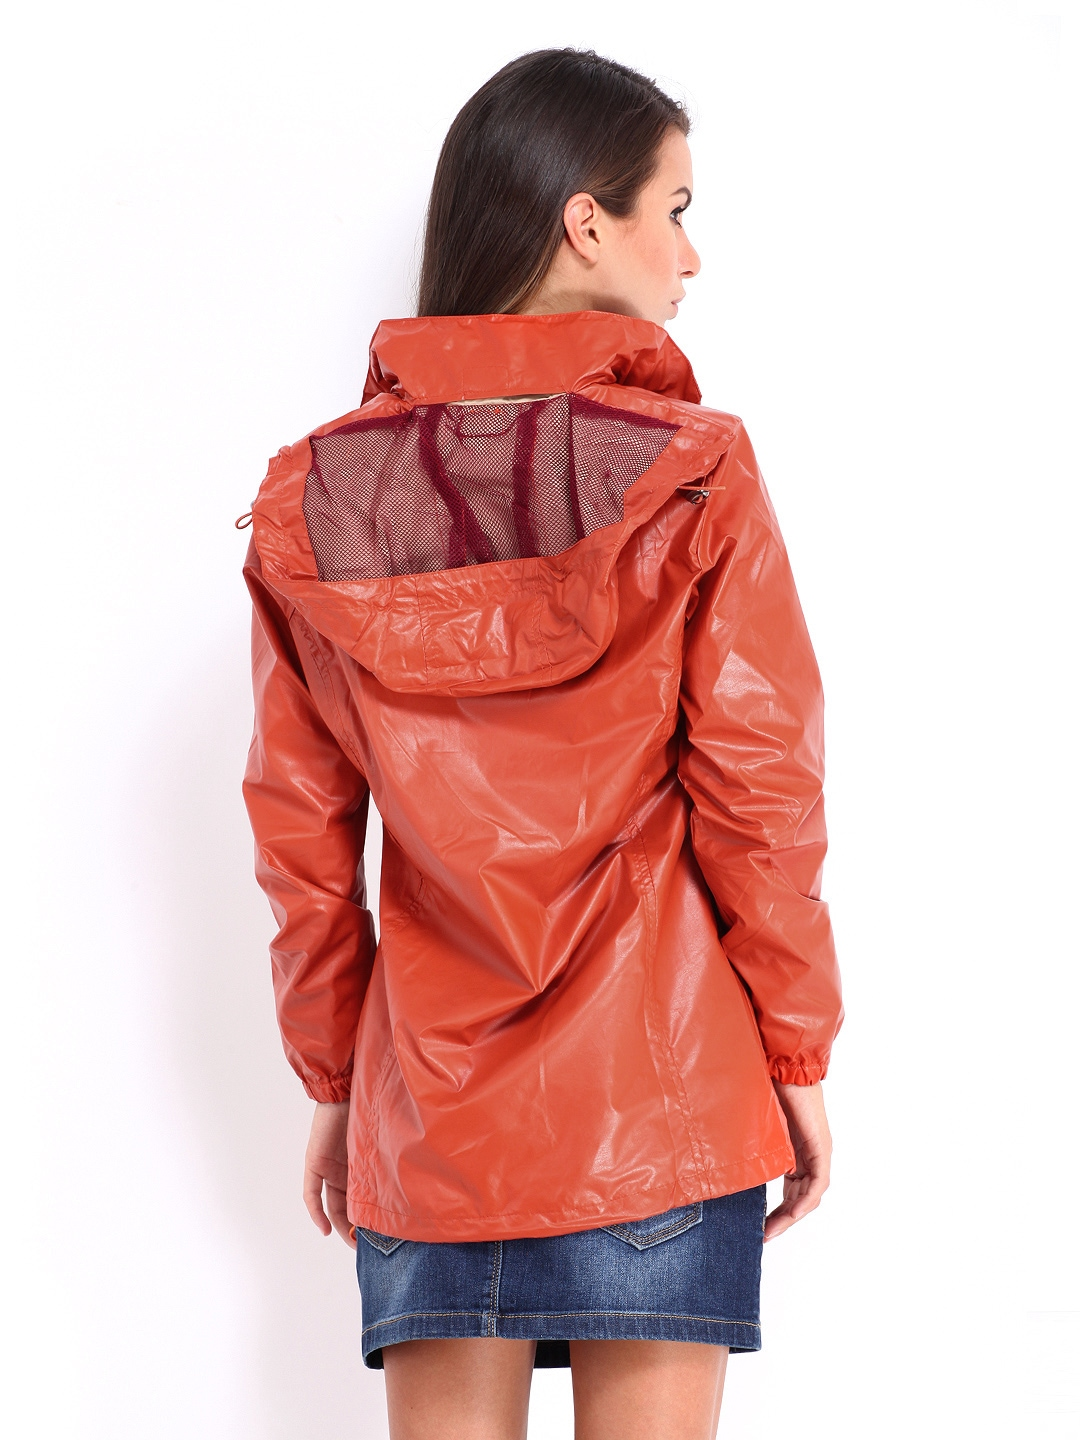 Online rain jackets india – Modern fashion jacket photo blog